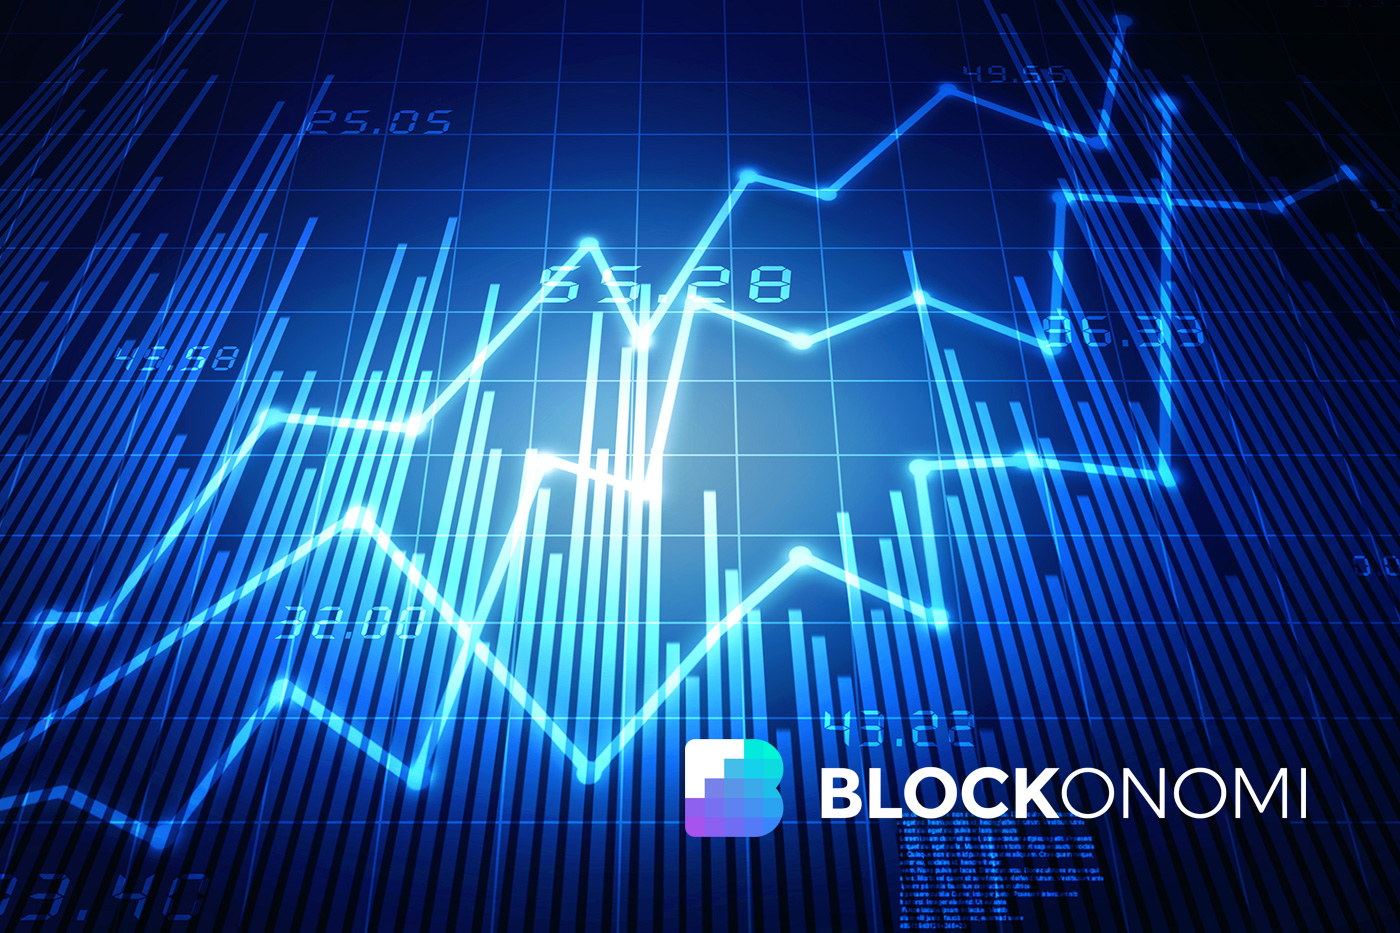 Price analysis of cryptocurrency